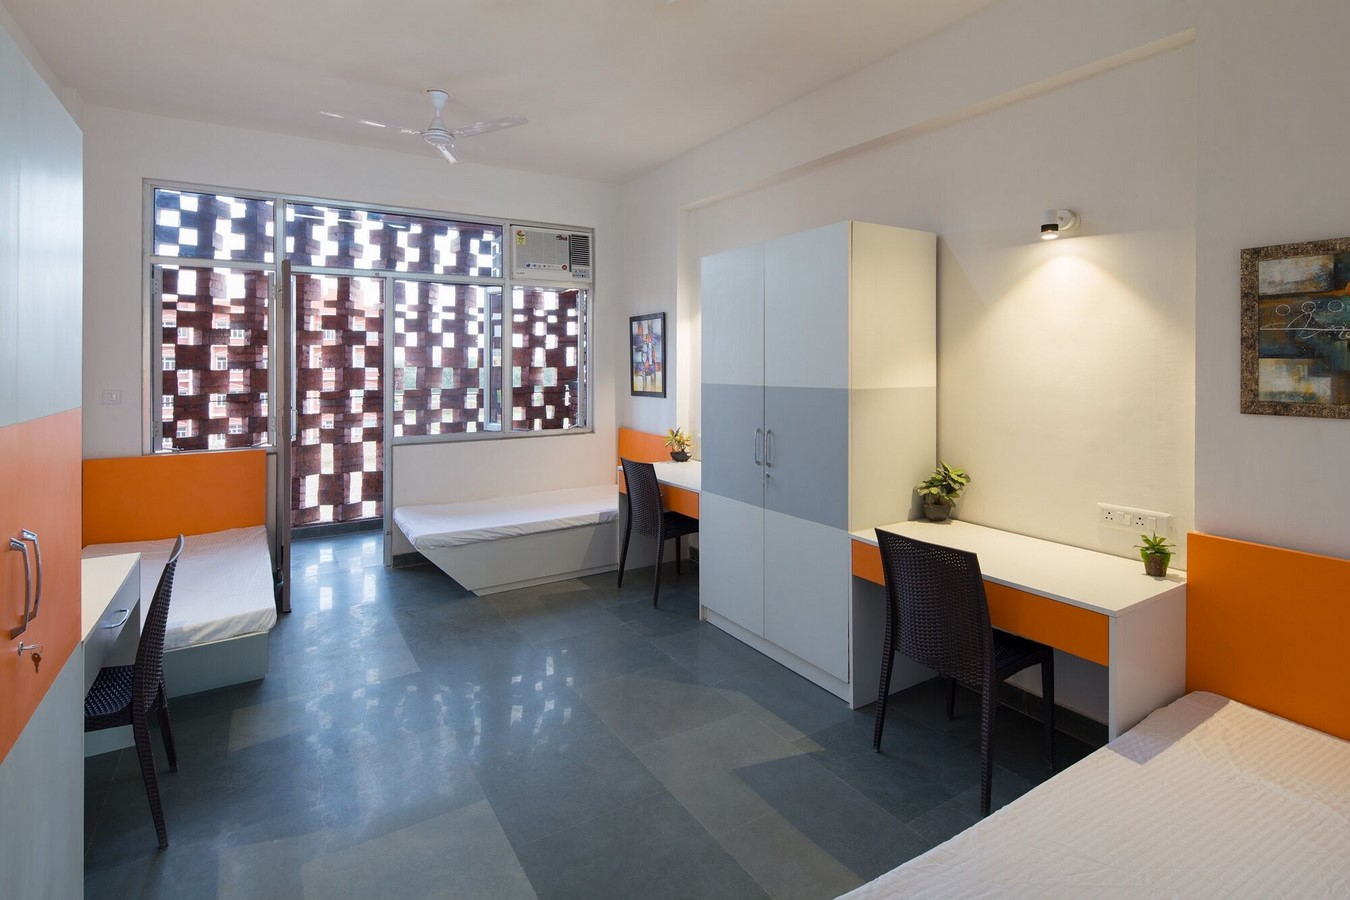 20 Examples of modern student housing - Sheet4